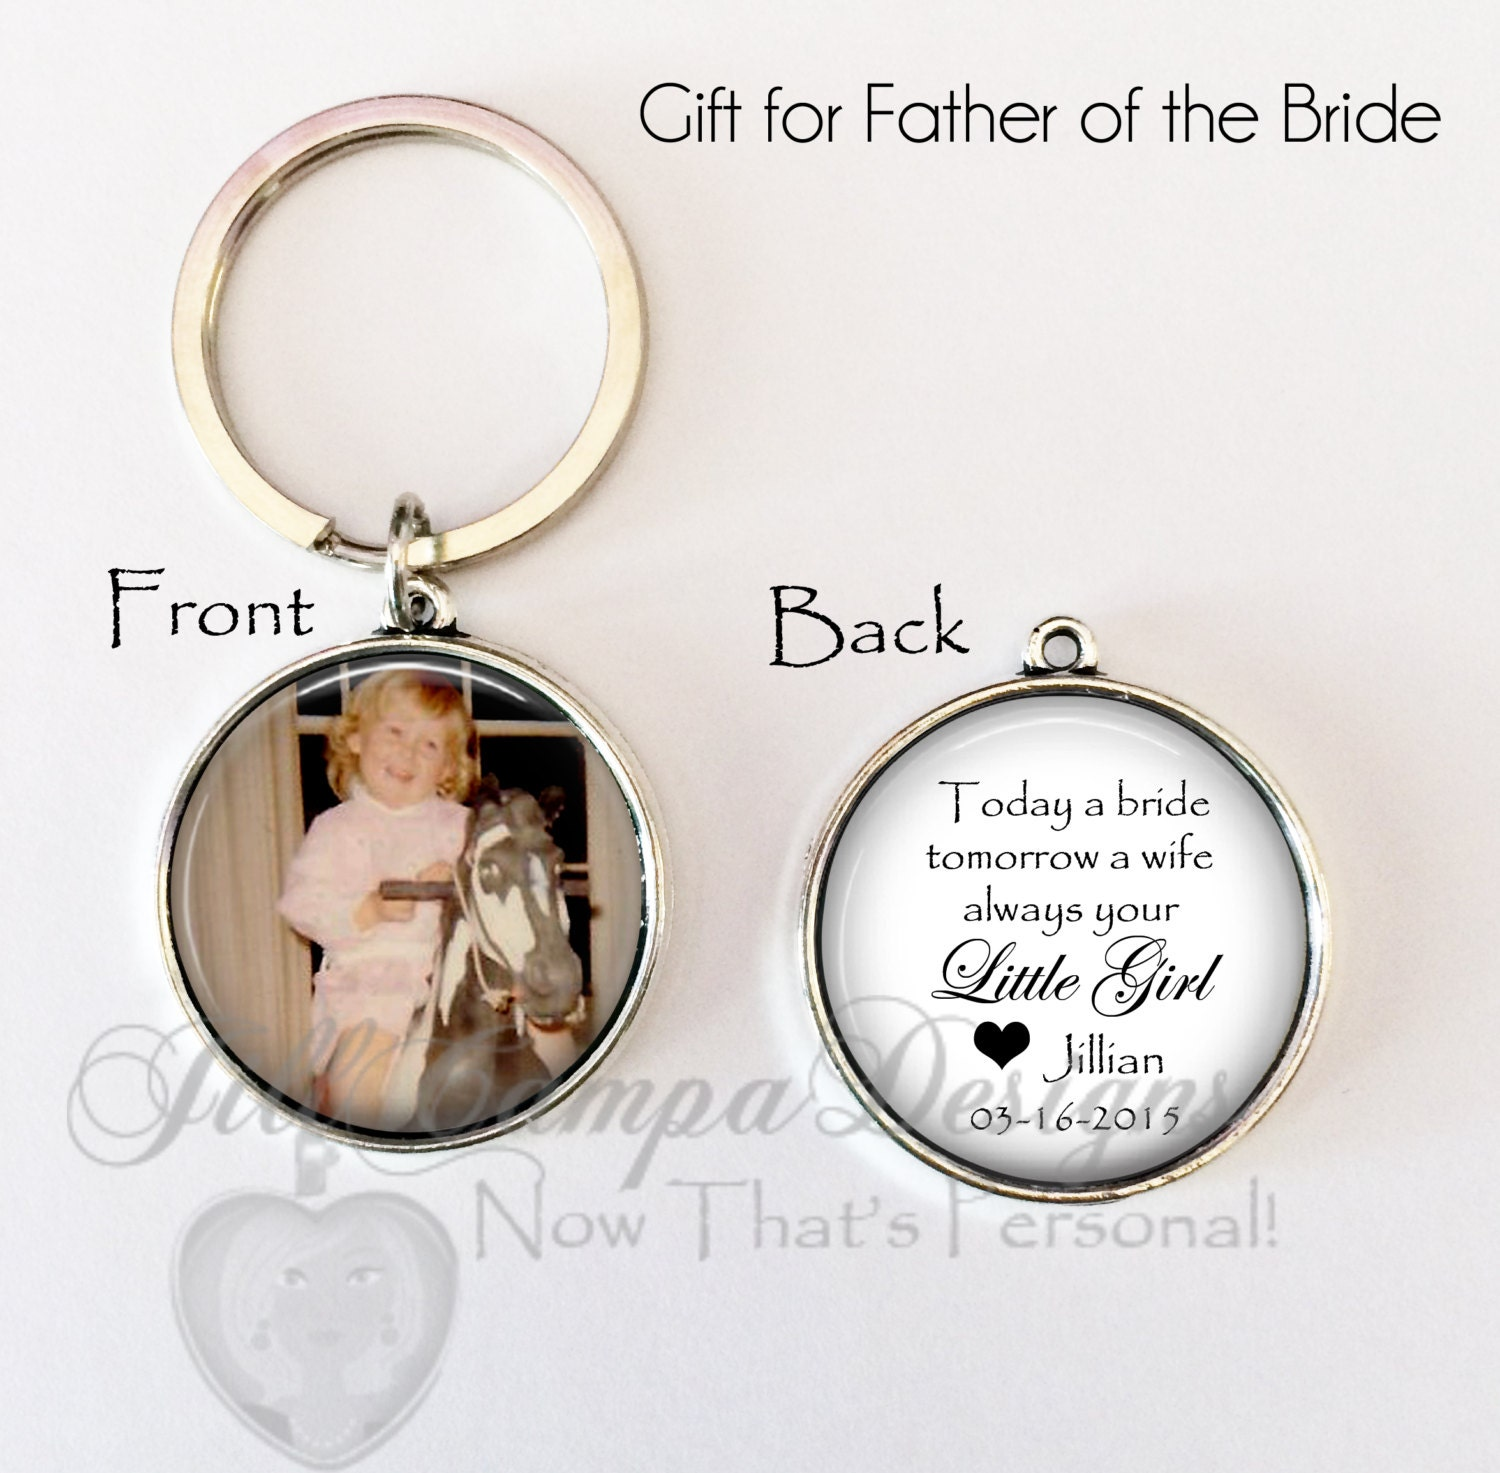 Wedding Gift Ideas For Brides Father : FATHER of the BRIDE GIFT Brides gift to Dad on wedding